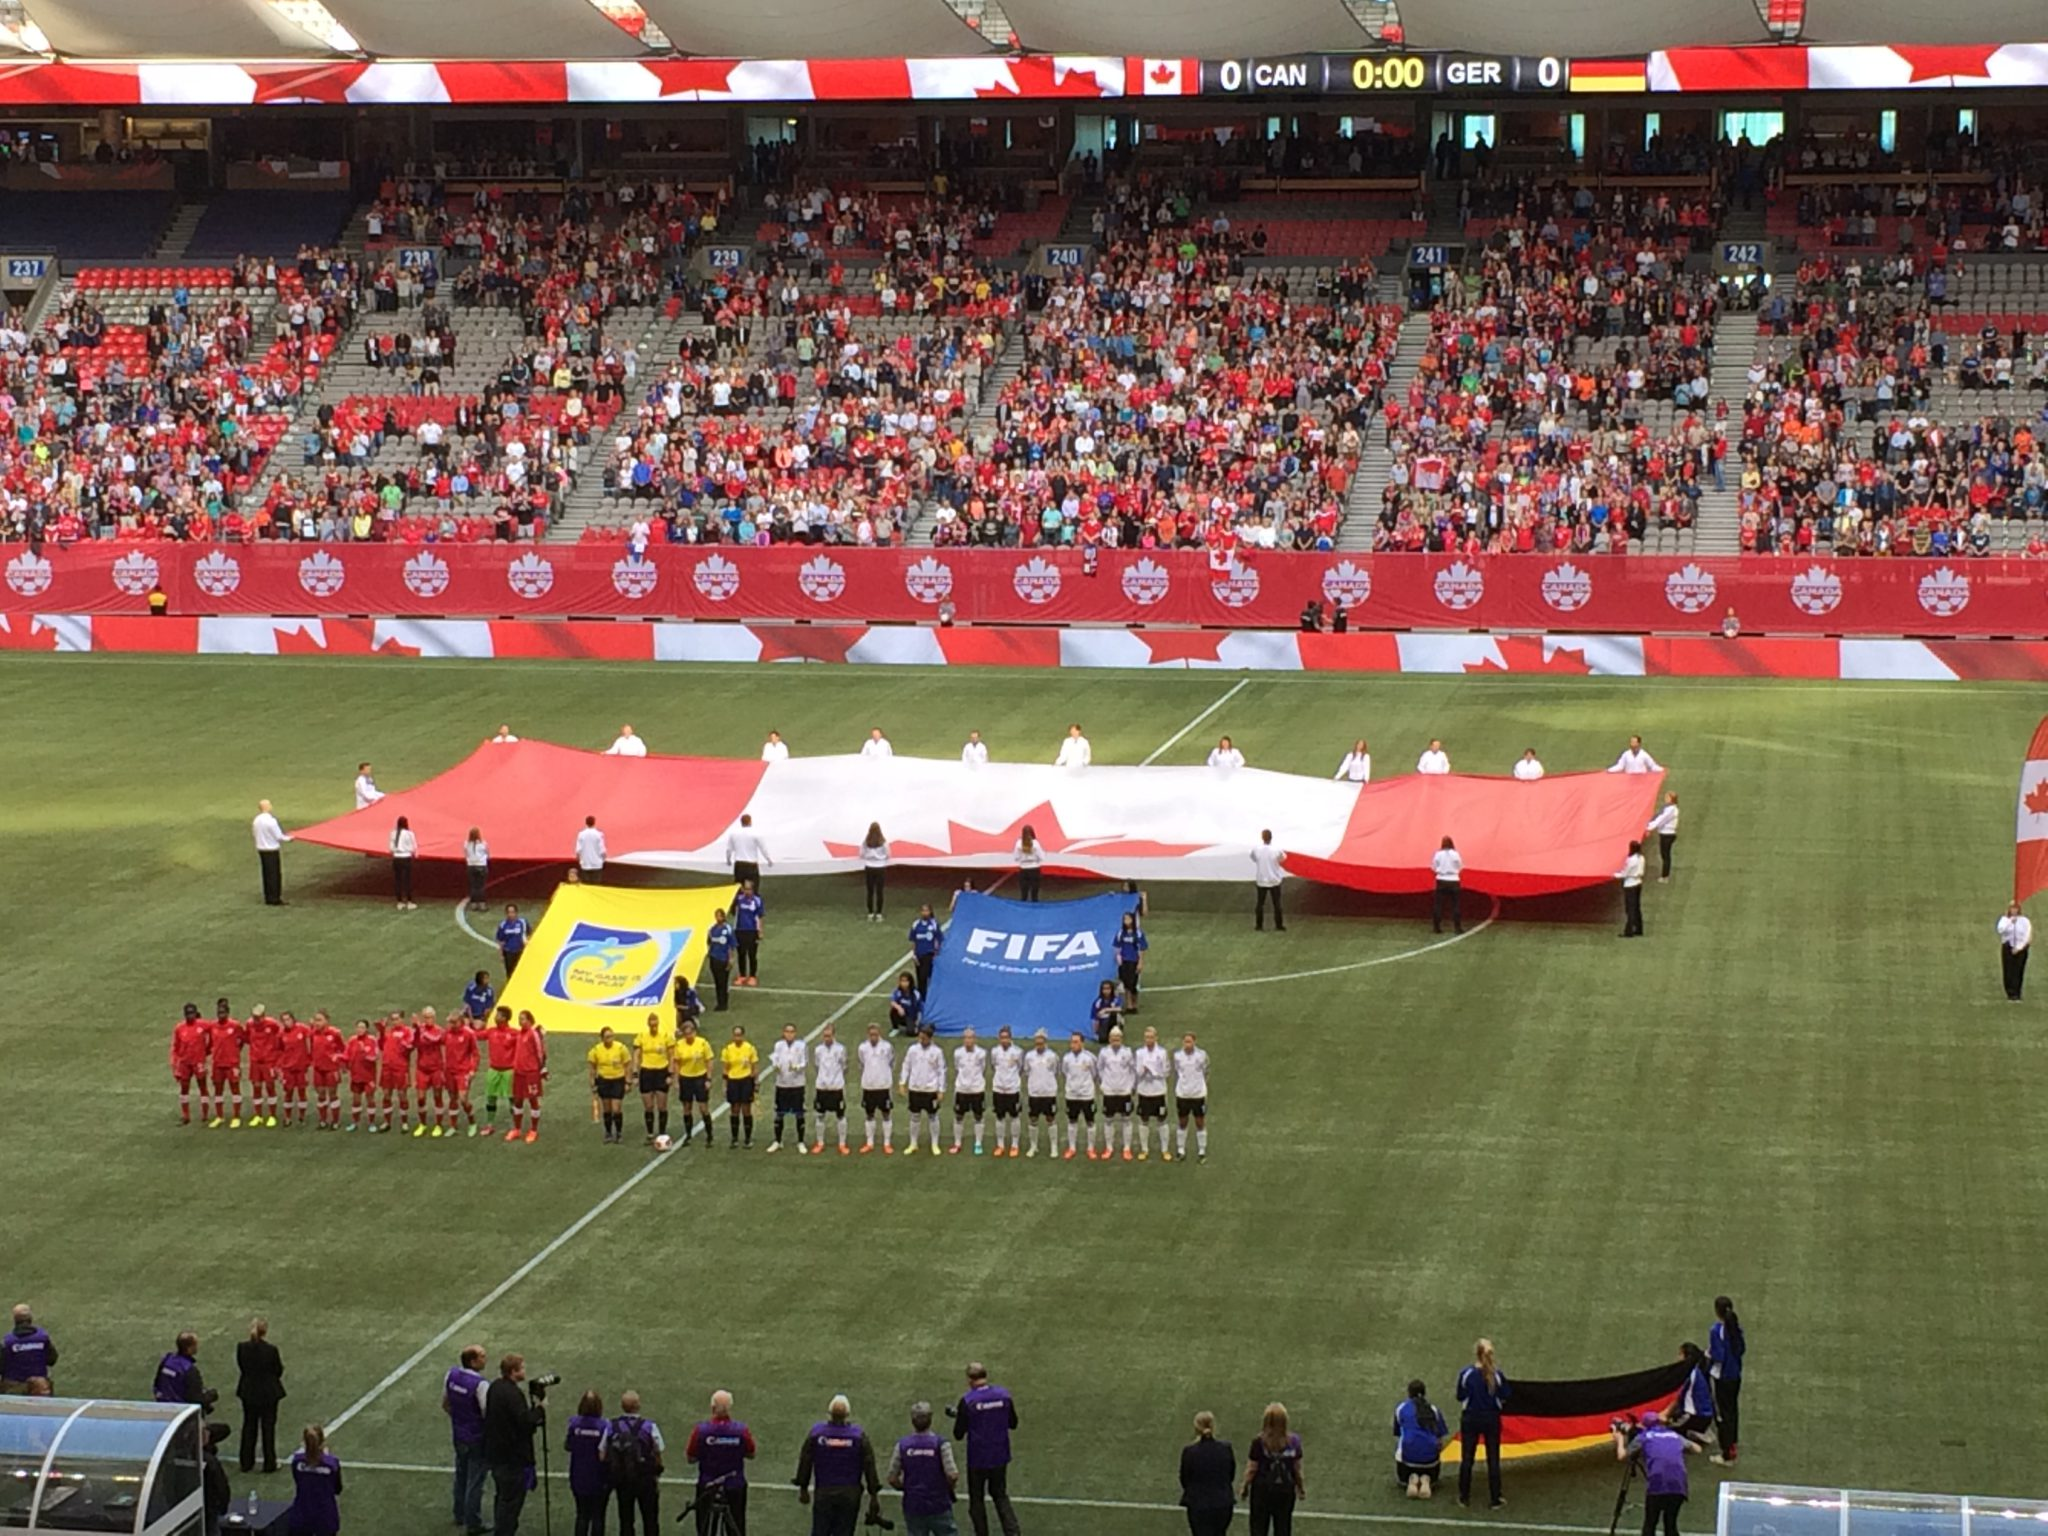 BC Place in Vancouver will host the 2015 Women's World Cup final. It is one of six venues that will be used, all featuring artificial turf. (Photo Copyright Harjeet Johal for The Equalizer)